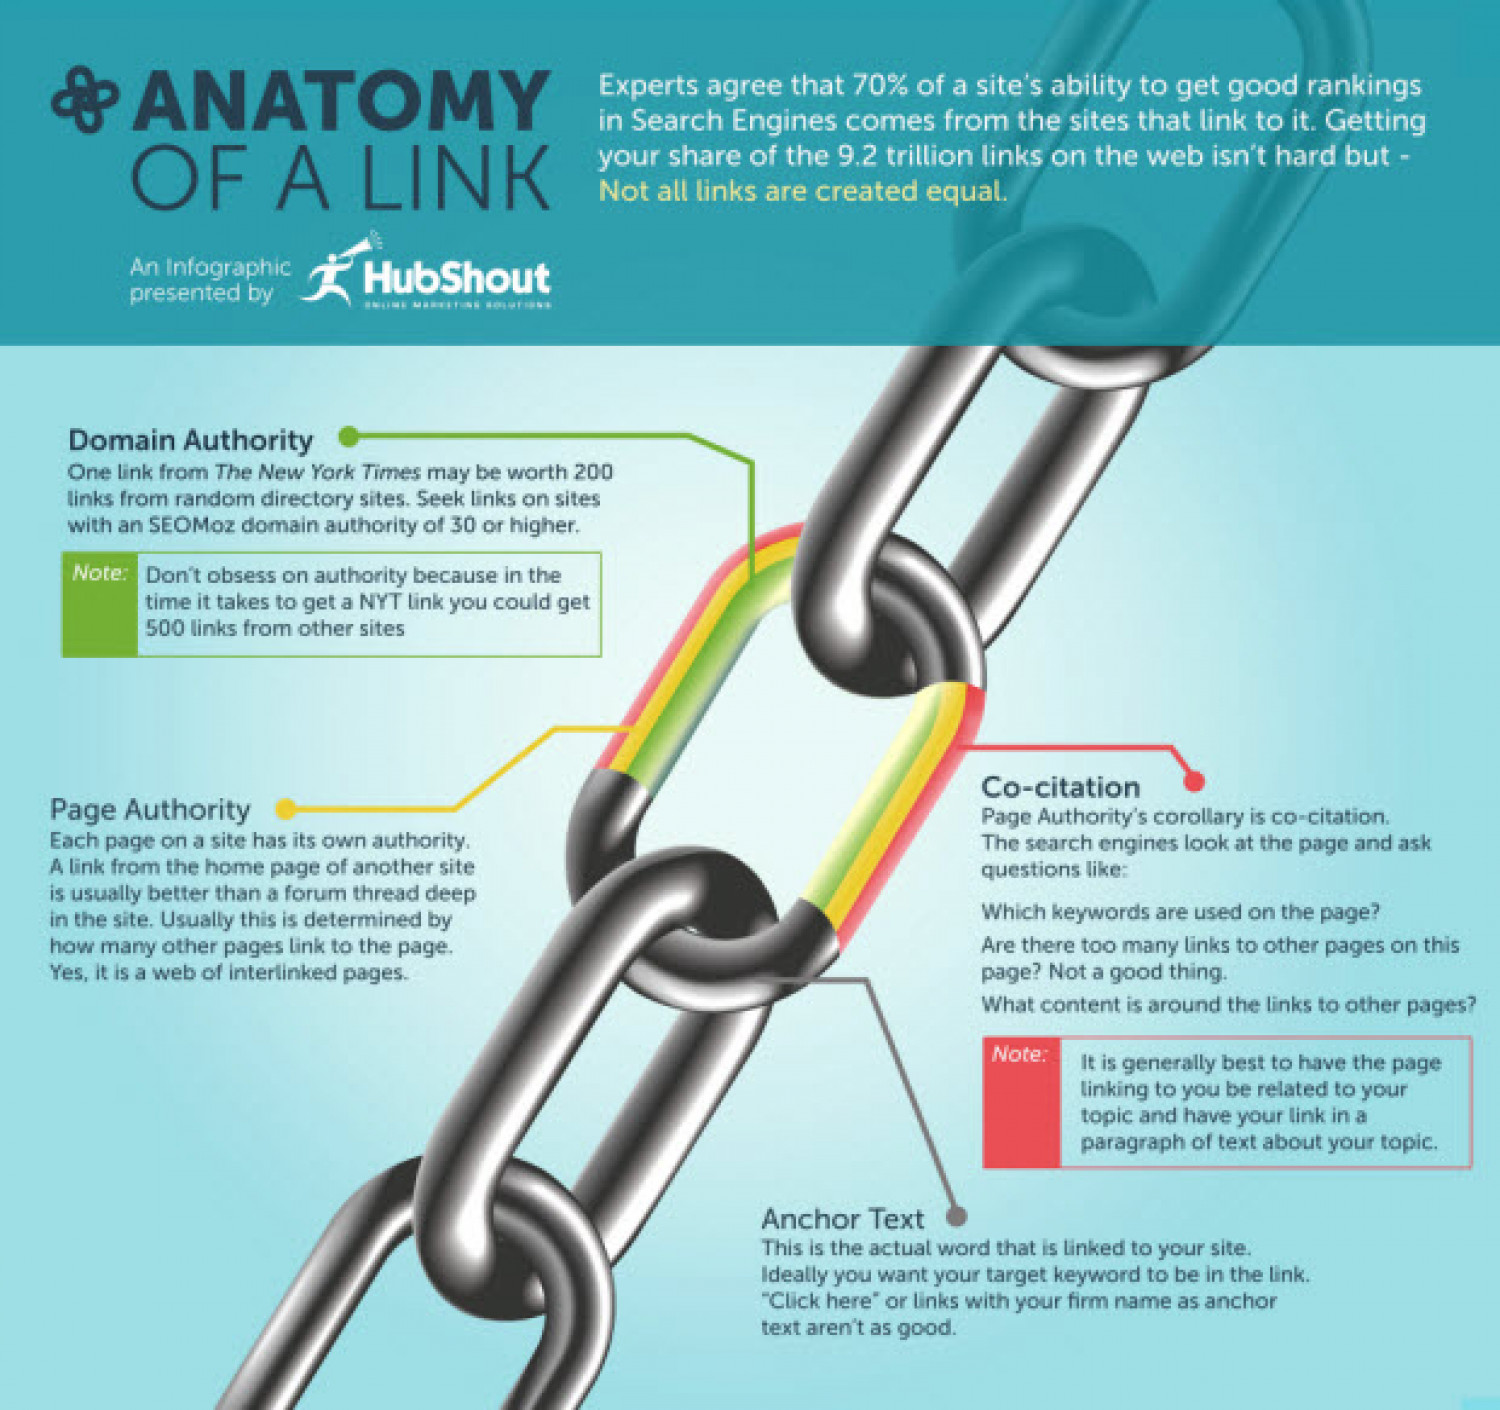 Anatomy of a Link | Visual.ly